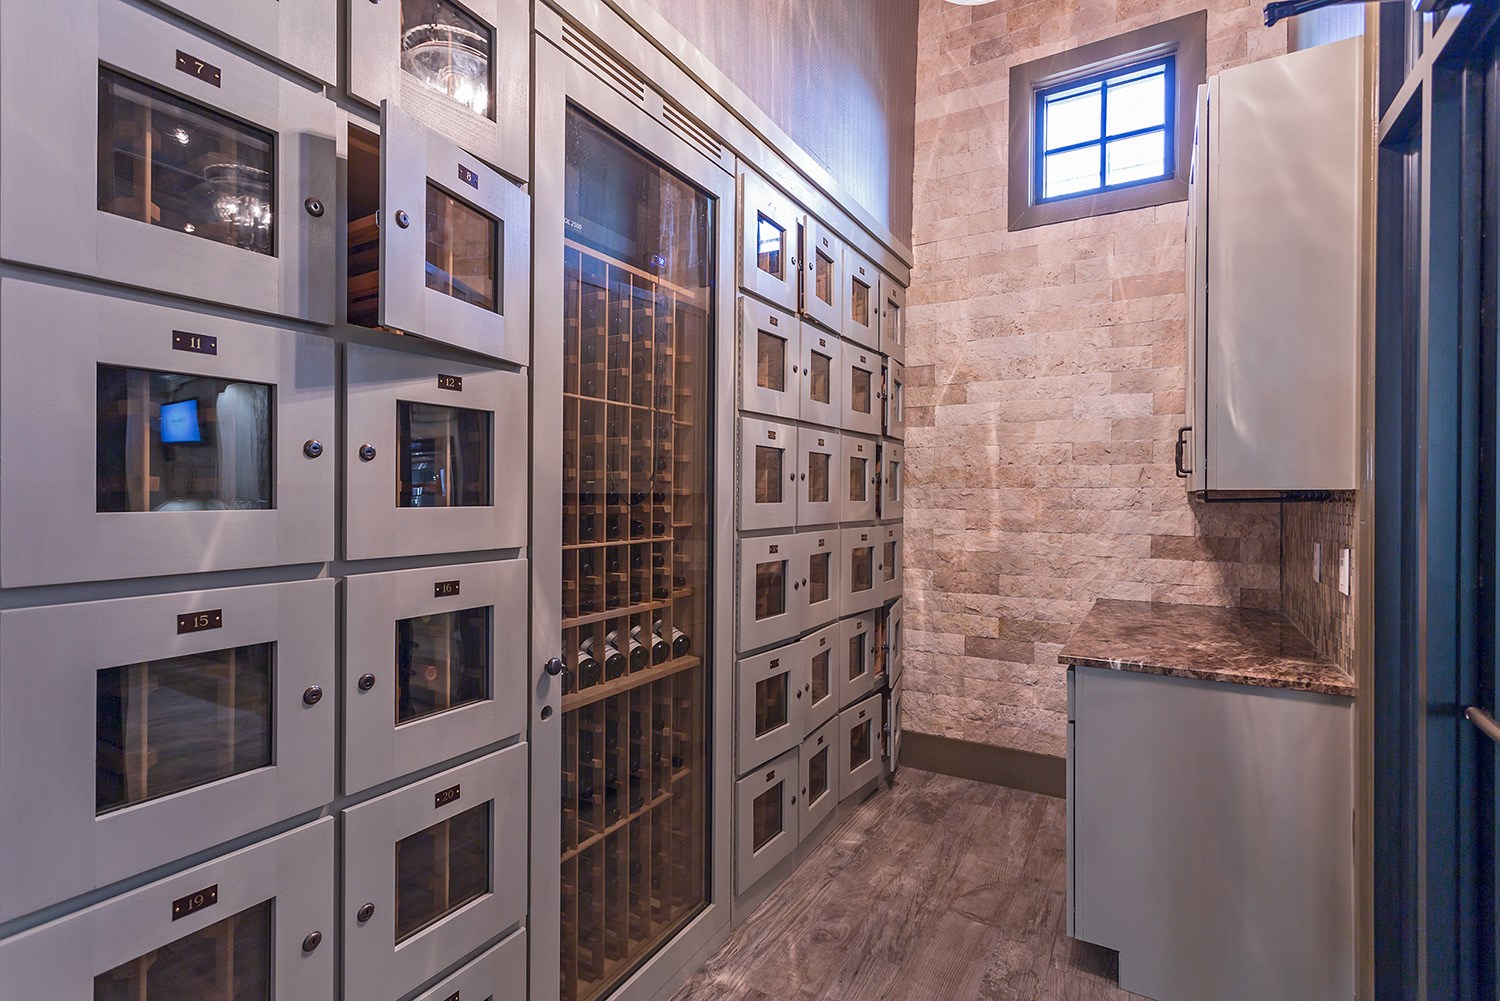 Resident Wine Coolers at Orchid Run Apartments in Naples, FL